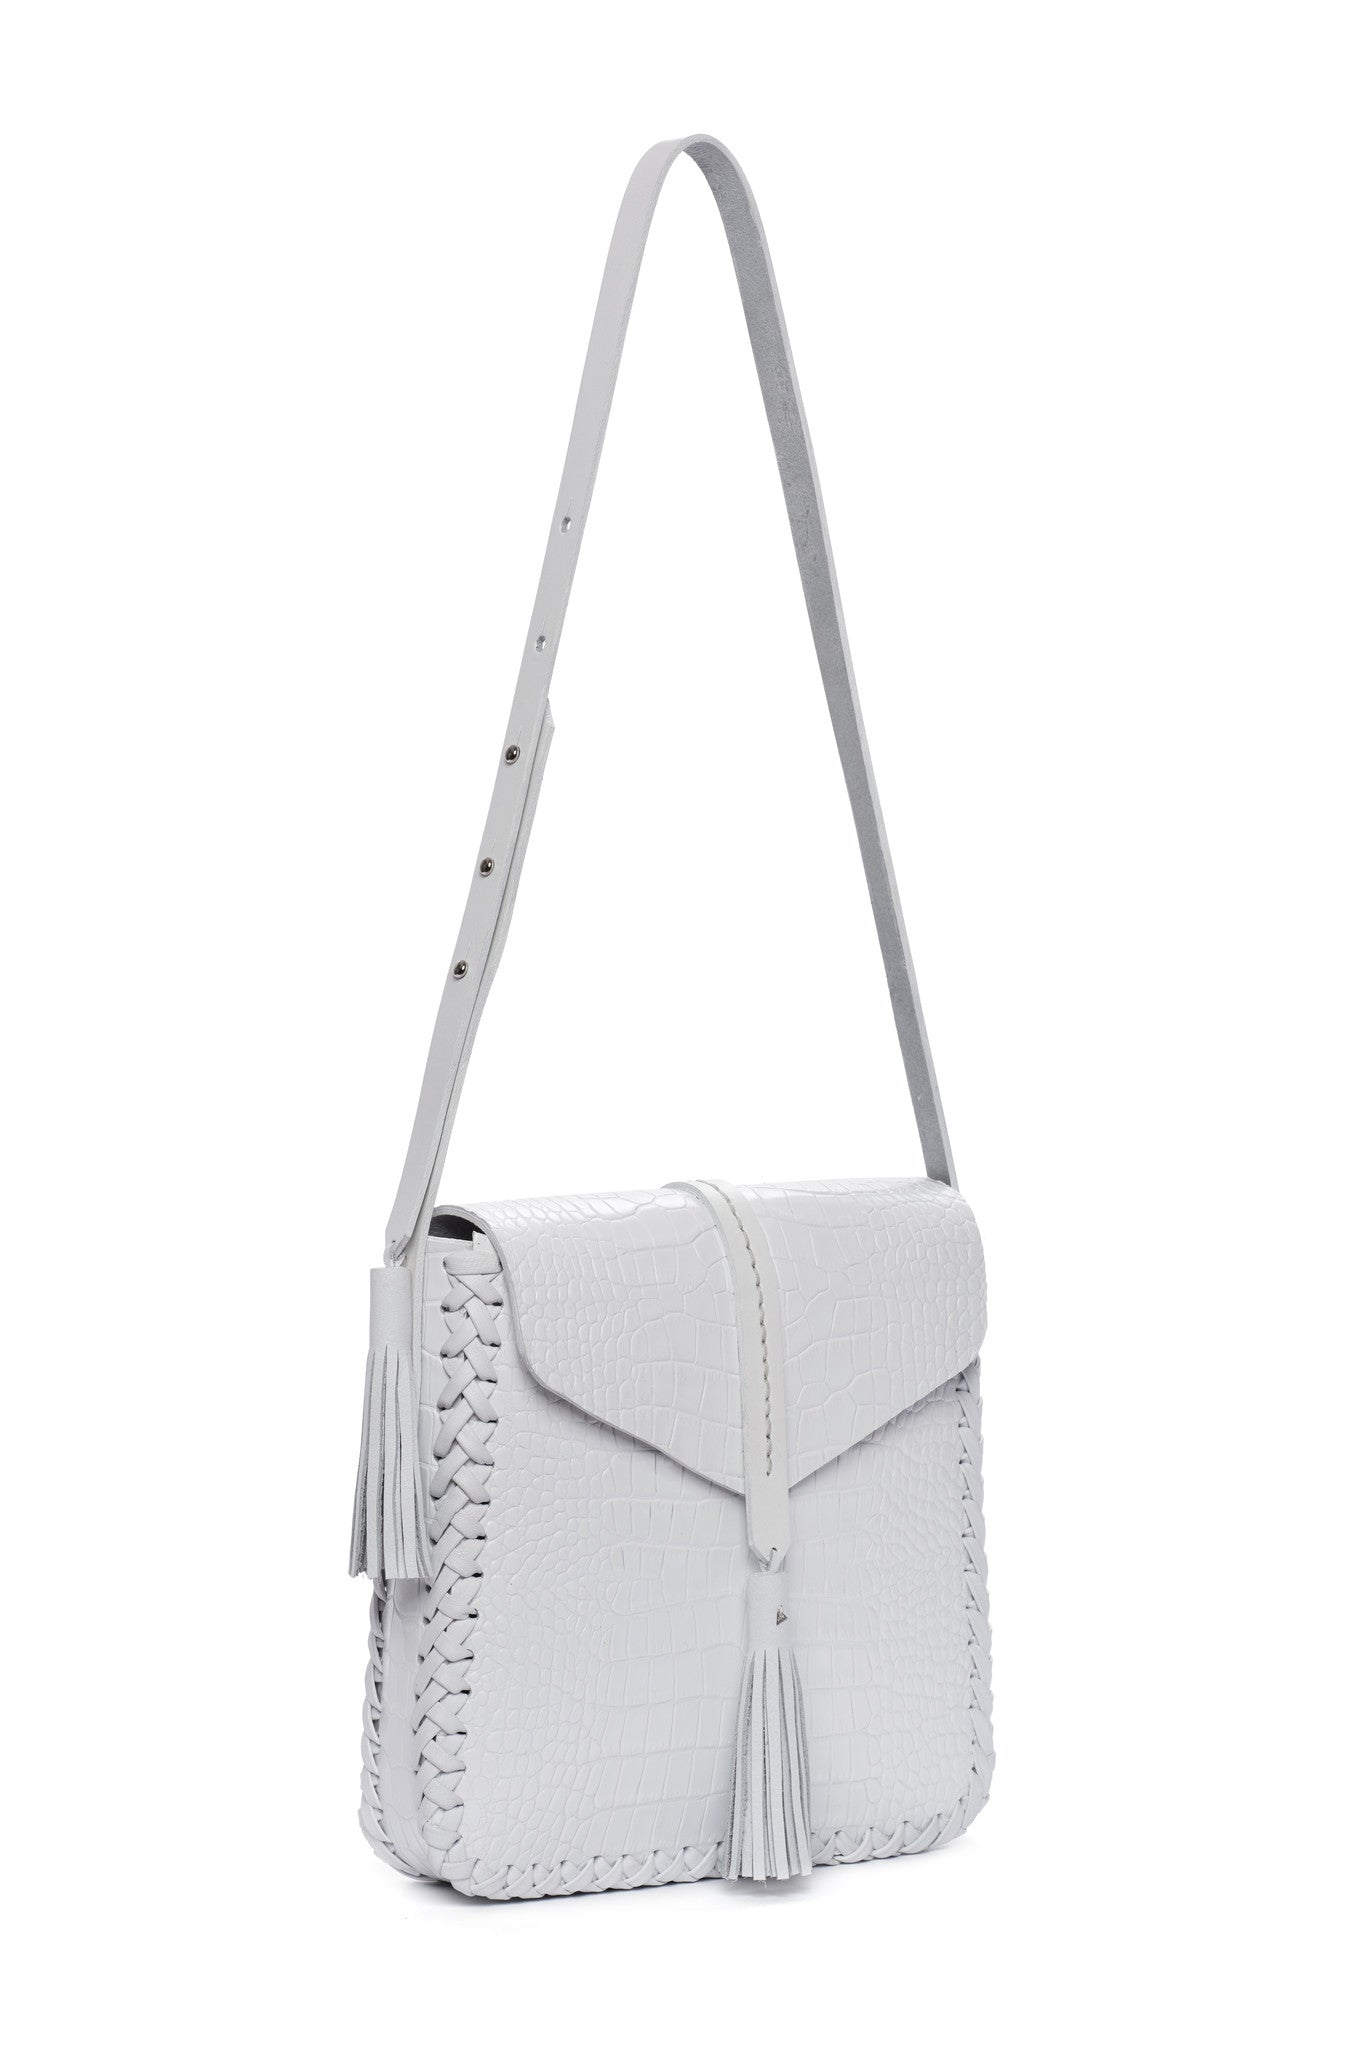 Leather Saddle Flap Bag Wendy Nichol cross body  Handmade Handbag in NYC white embossed Croc  Crocodile Alligator Leather